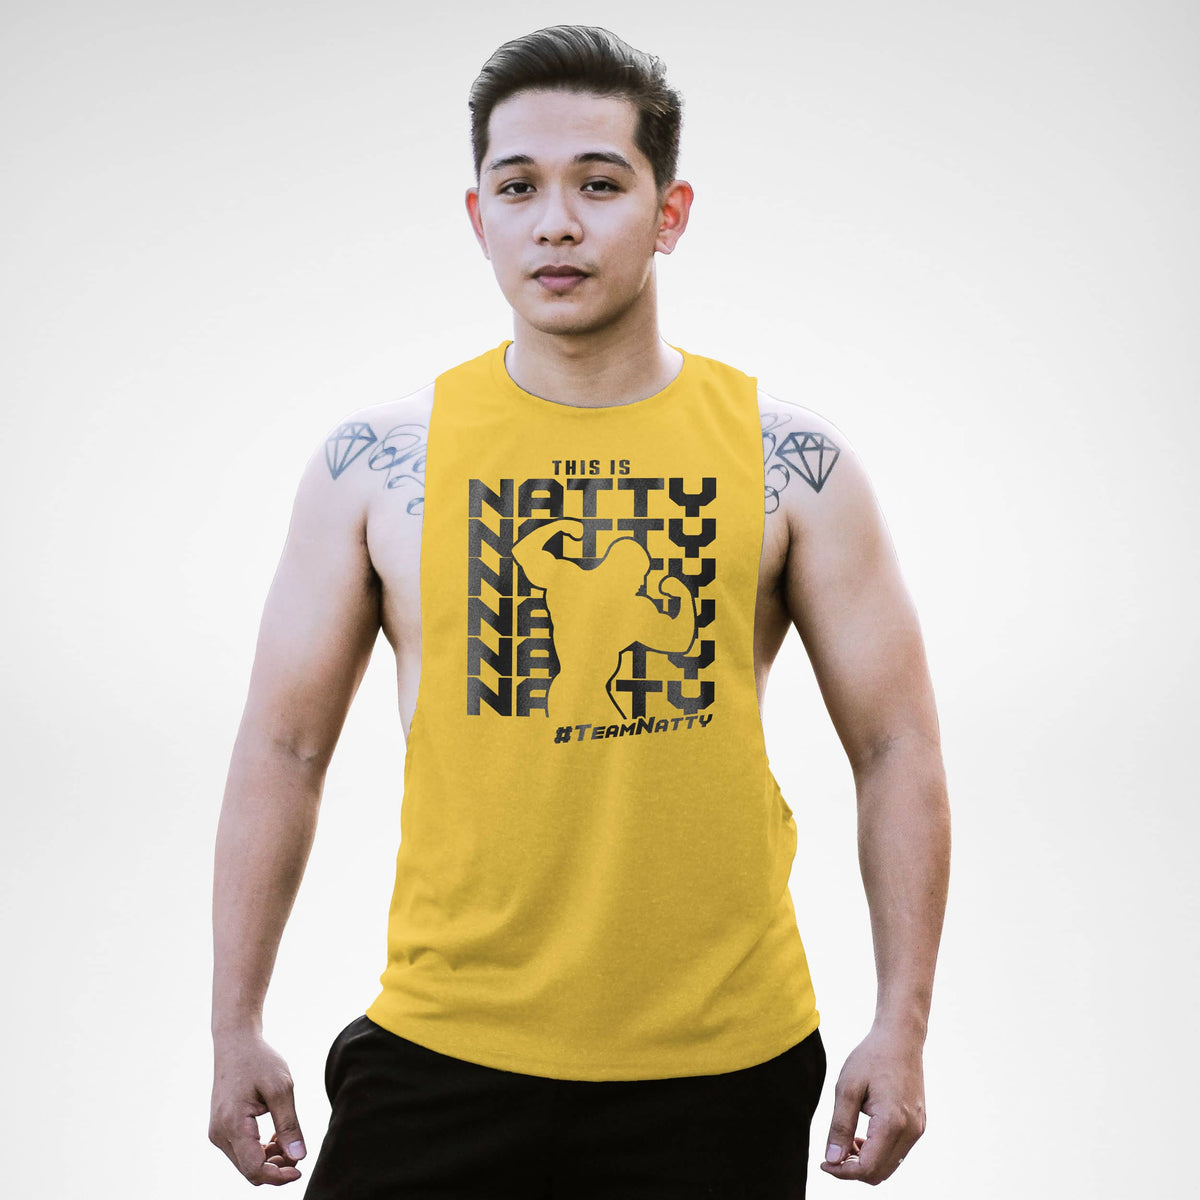 This Is Team Natty Openside Tank Top